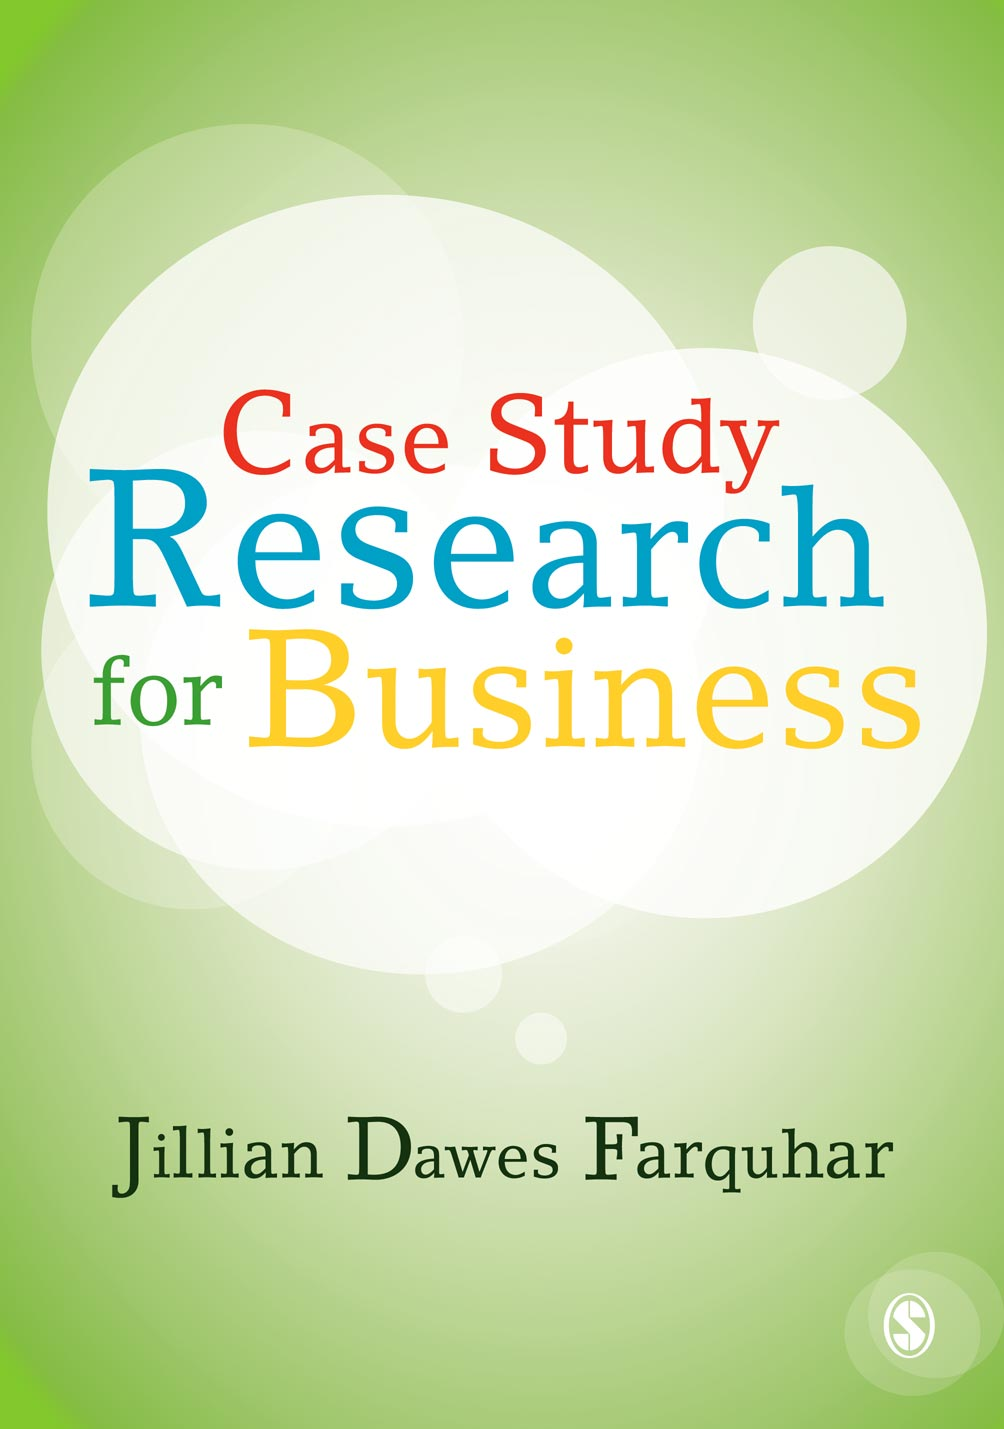 Download Ebook Case Study Research for Business by Jillian Dawes Farquhar Pdf